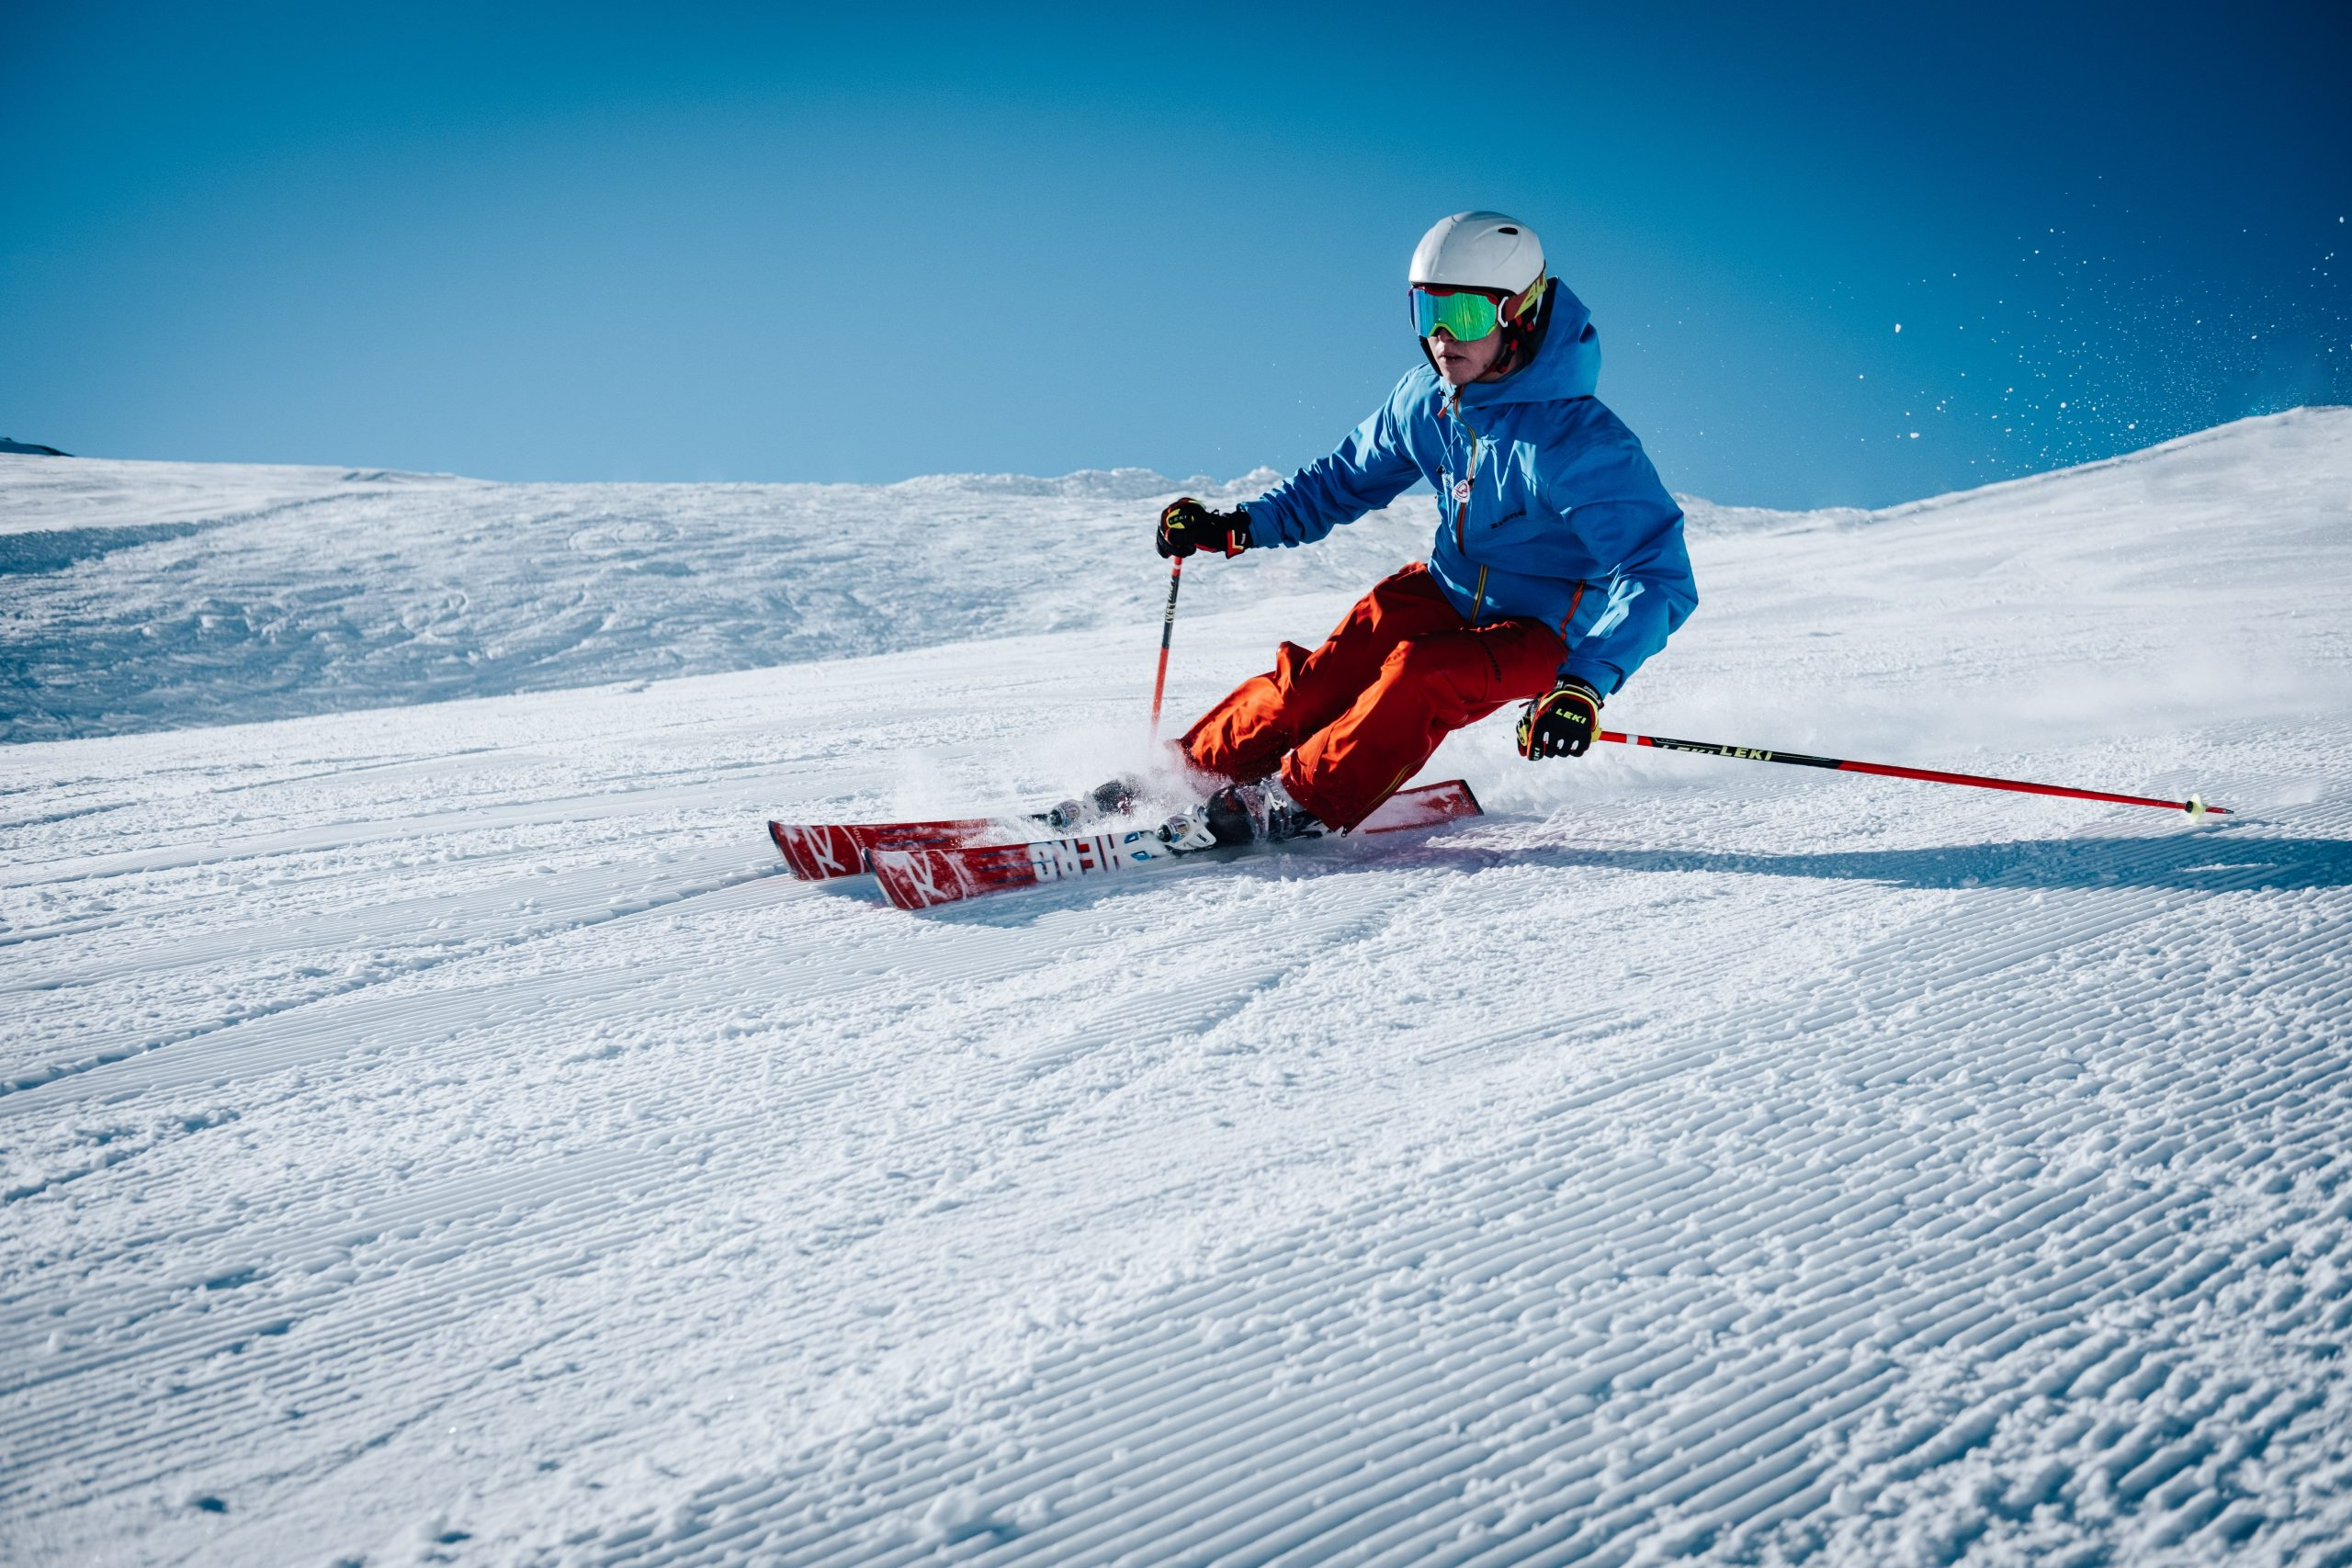 The Best Ski Resorts in the Eastern United States